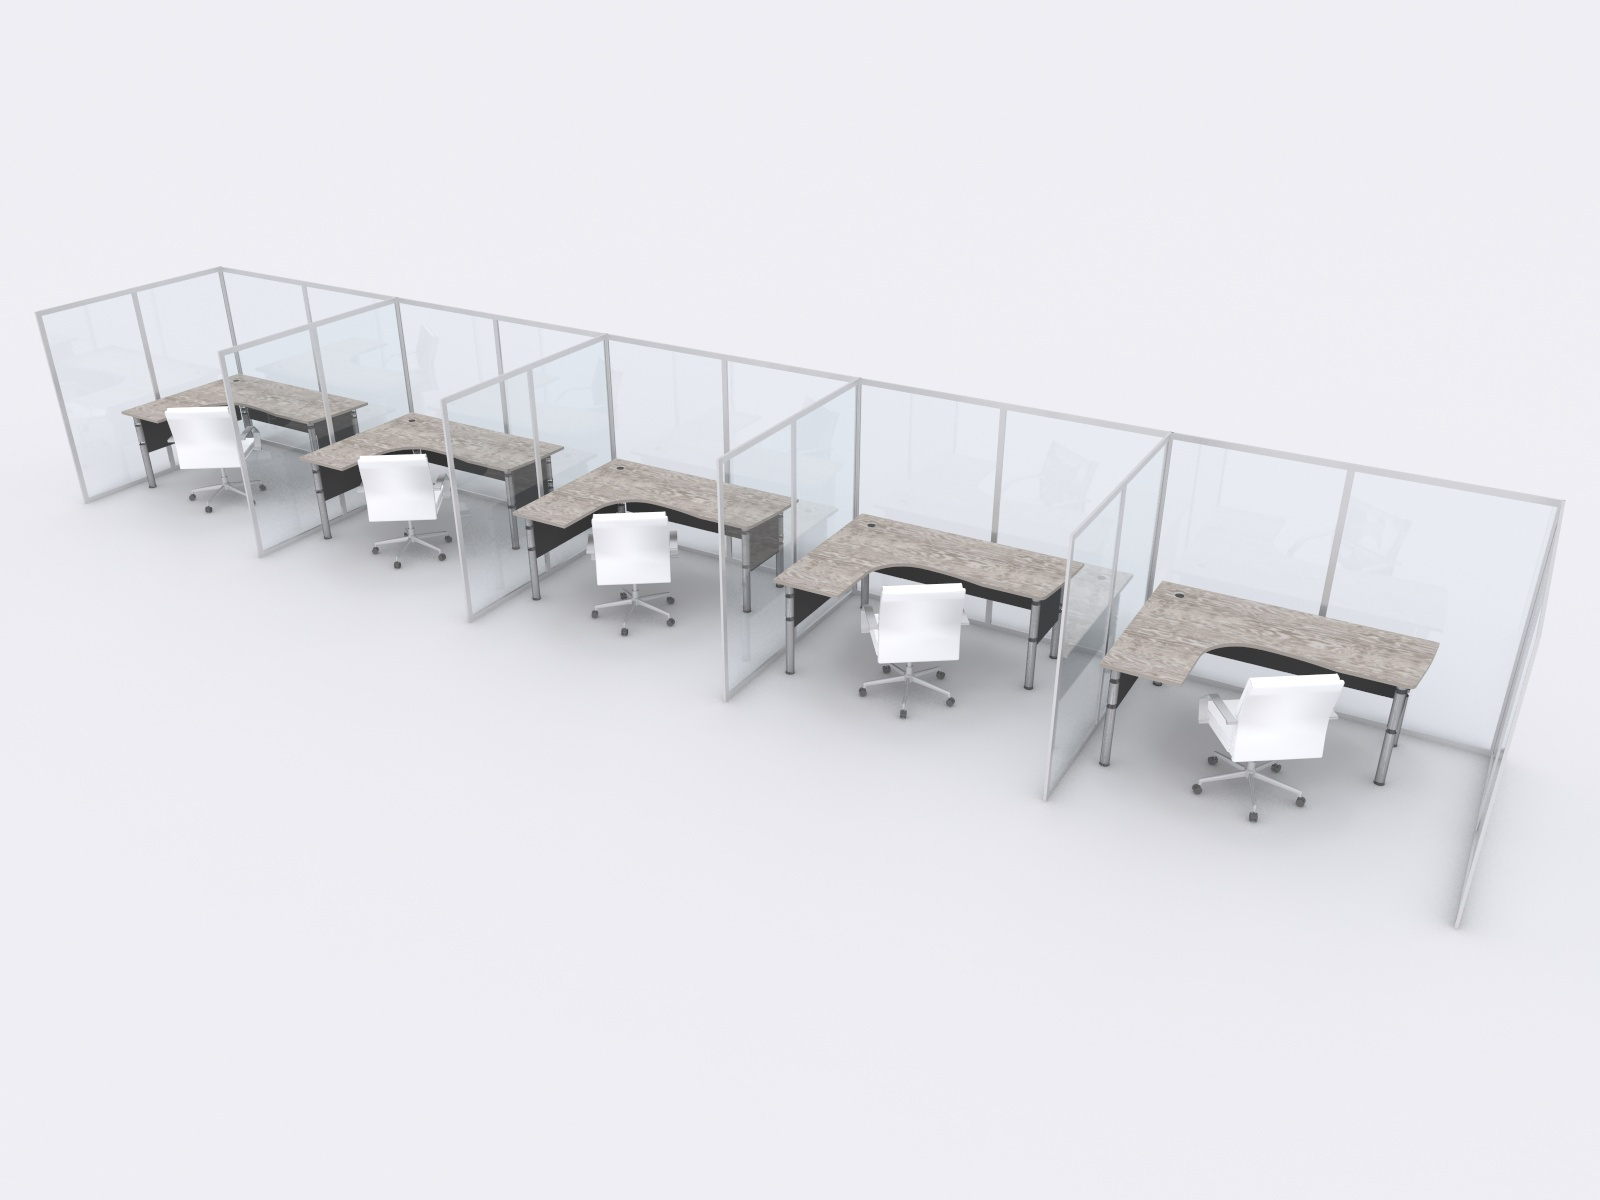 050520-Office-Pod-Five-Modul-38-and-46x72-View-20000